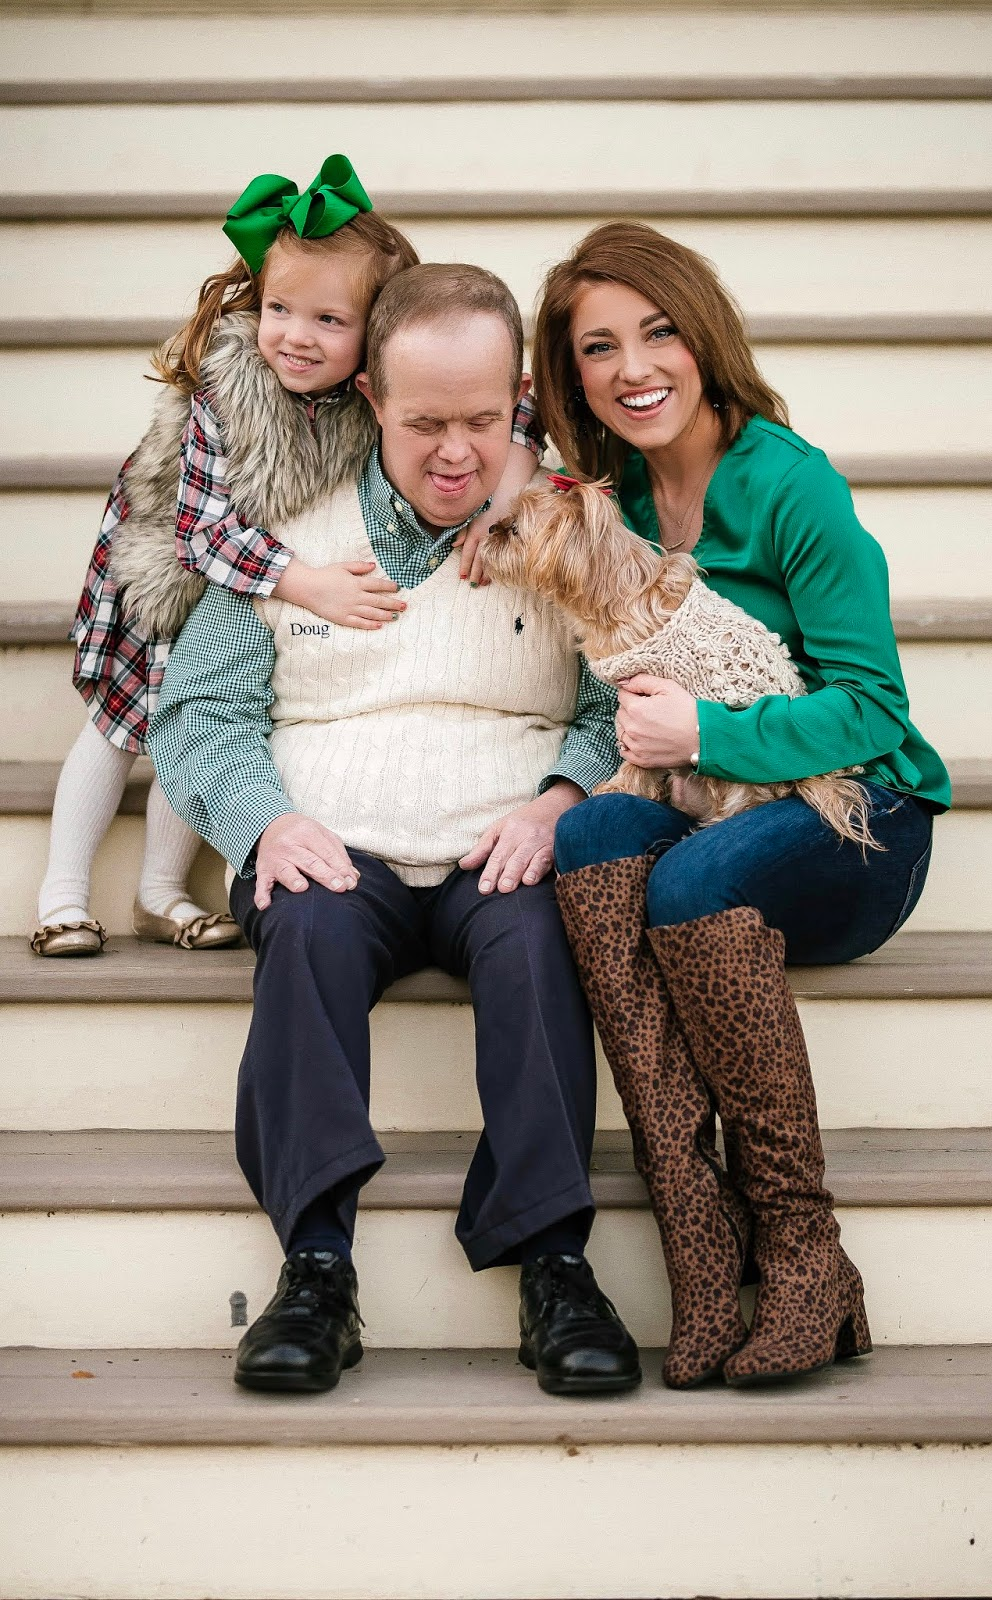 Meet Doug: A story about my Uncle who has Down Syndrome - Something Delightful Blog